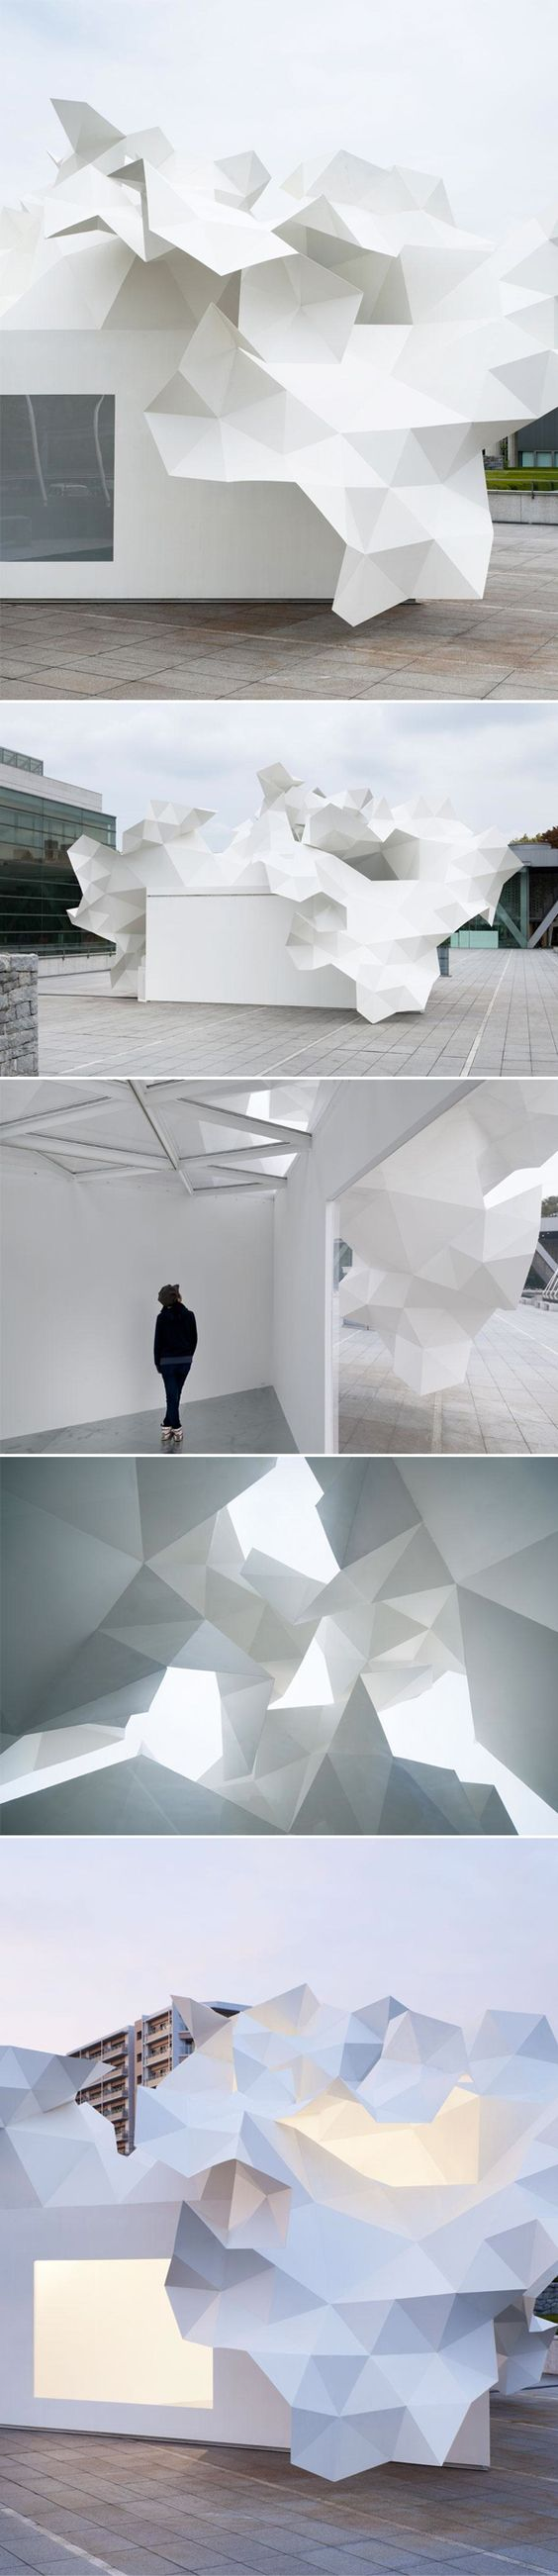 Akihisa Hirata's Bloomberg Pavillion is located in front of the main entry of the Tokyo Contemporary Art Museum